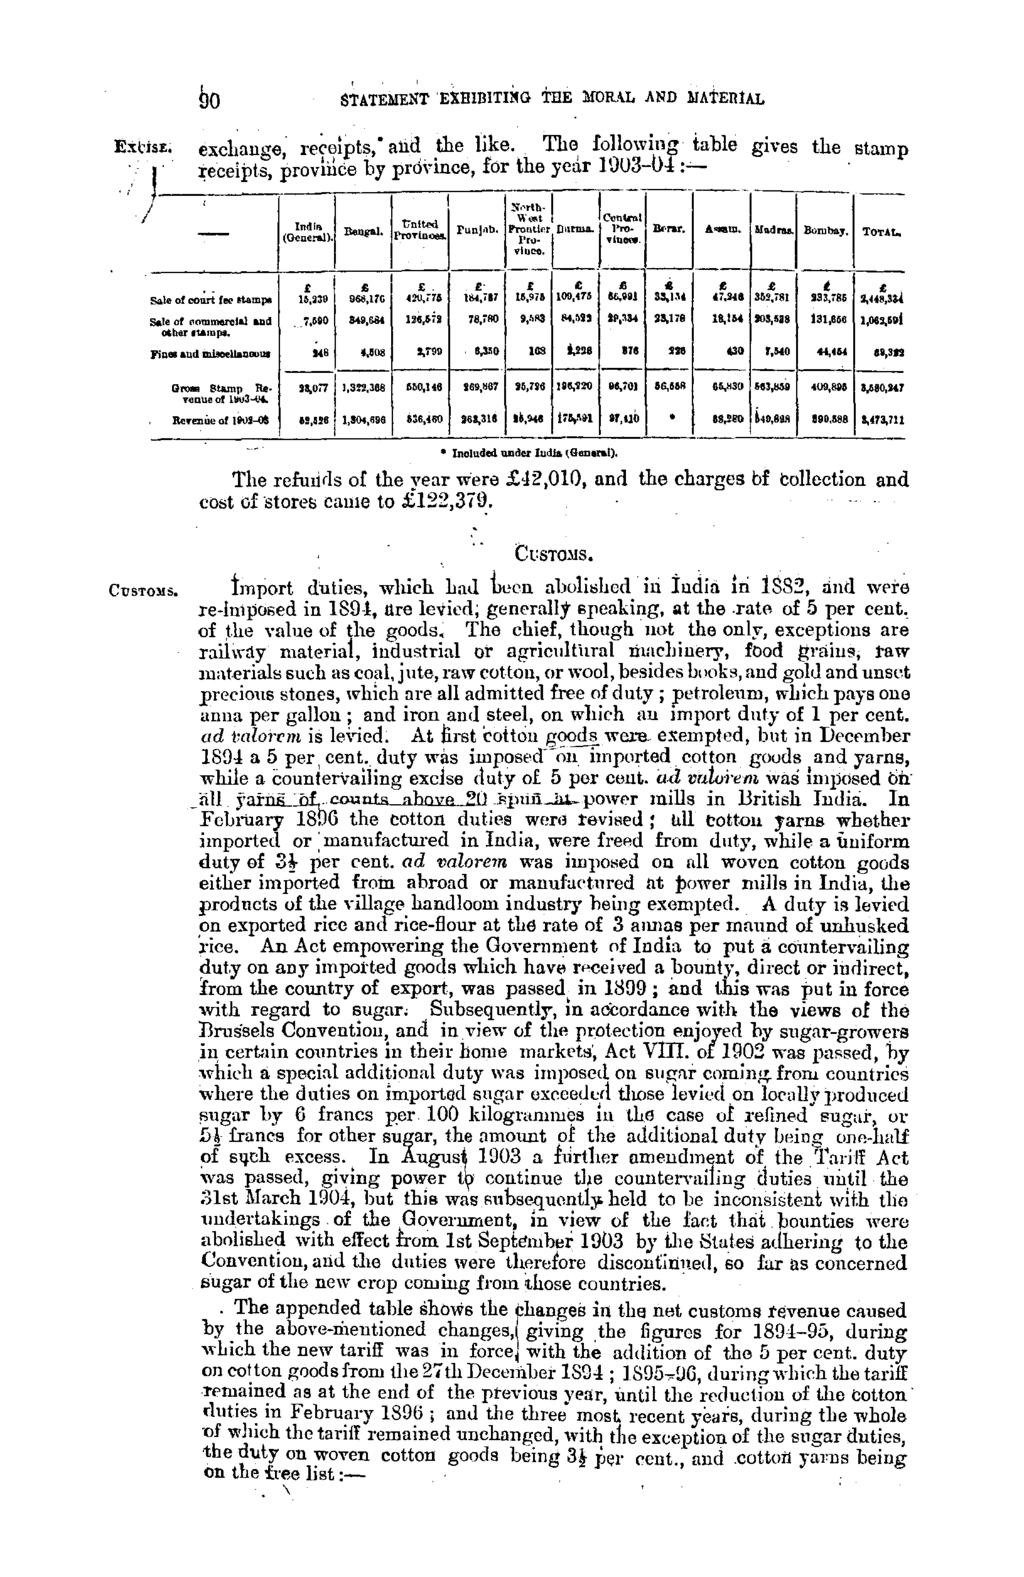 EAST INDIA PROGRESS AND CONDITION STATEIENT EXHIBITING THE IN D I A DURING YEAR FORTIETH NUMBER 30 Lila PDF